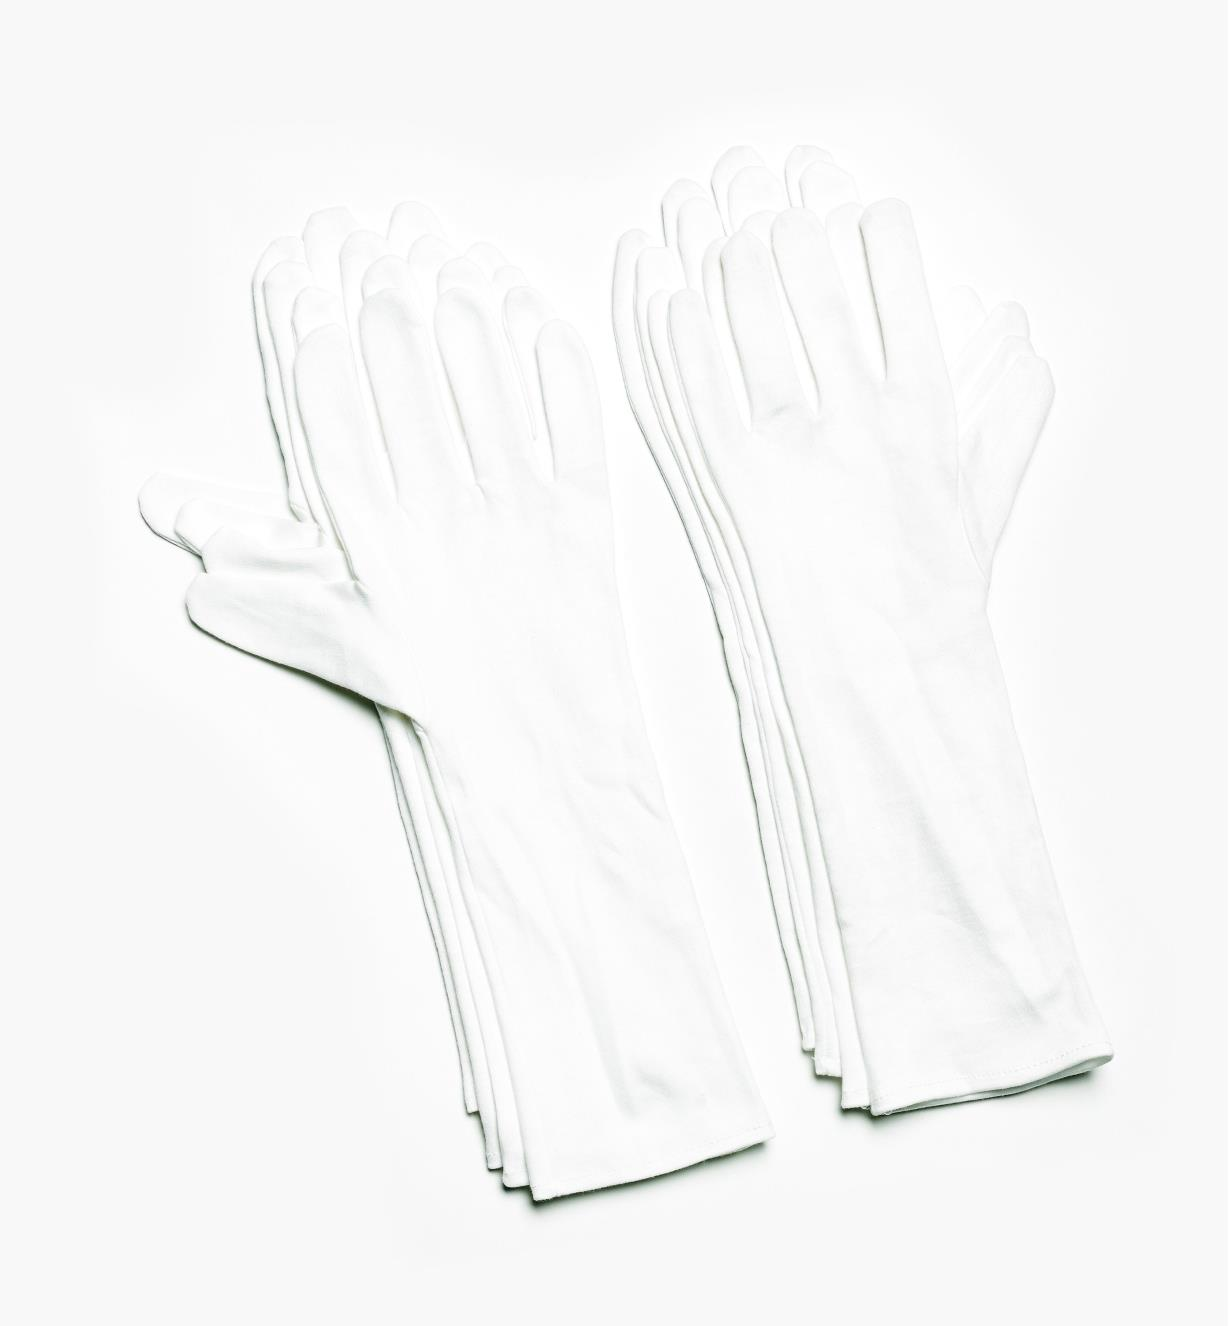 09A2060 - X-Large Extra-Long Cotton Glove Liners (size 10), pkg. of 8